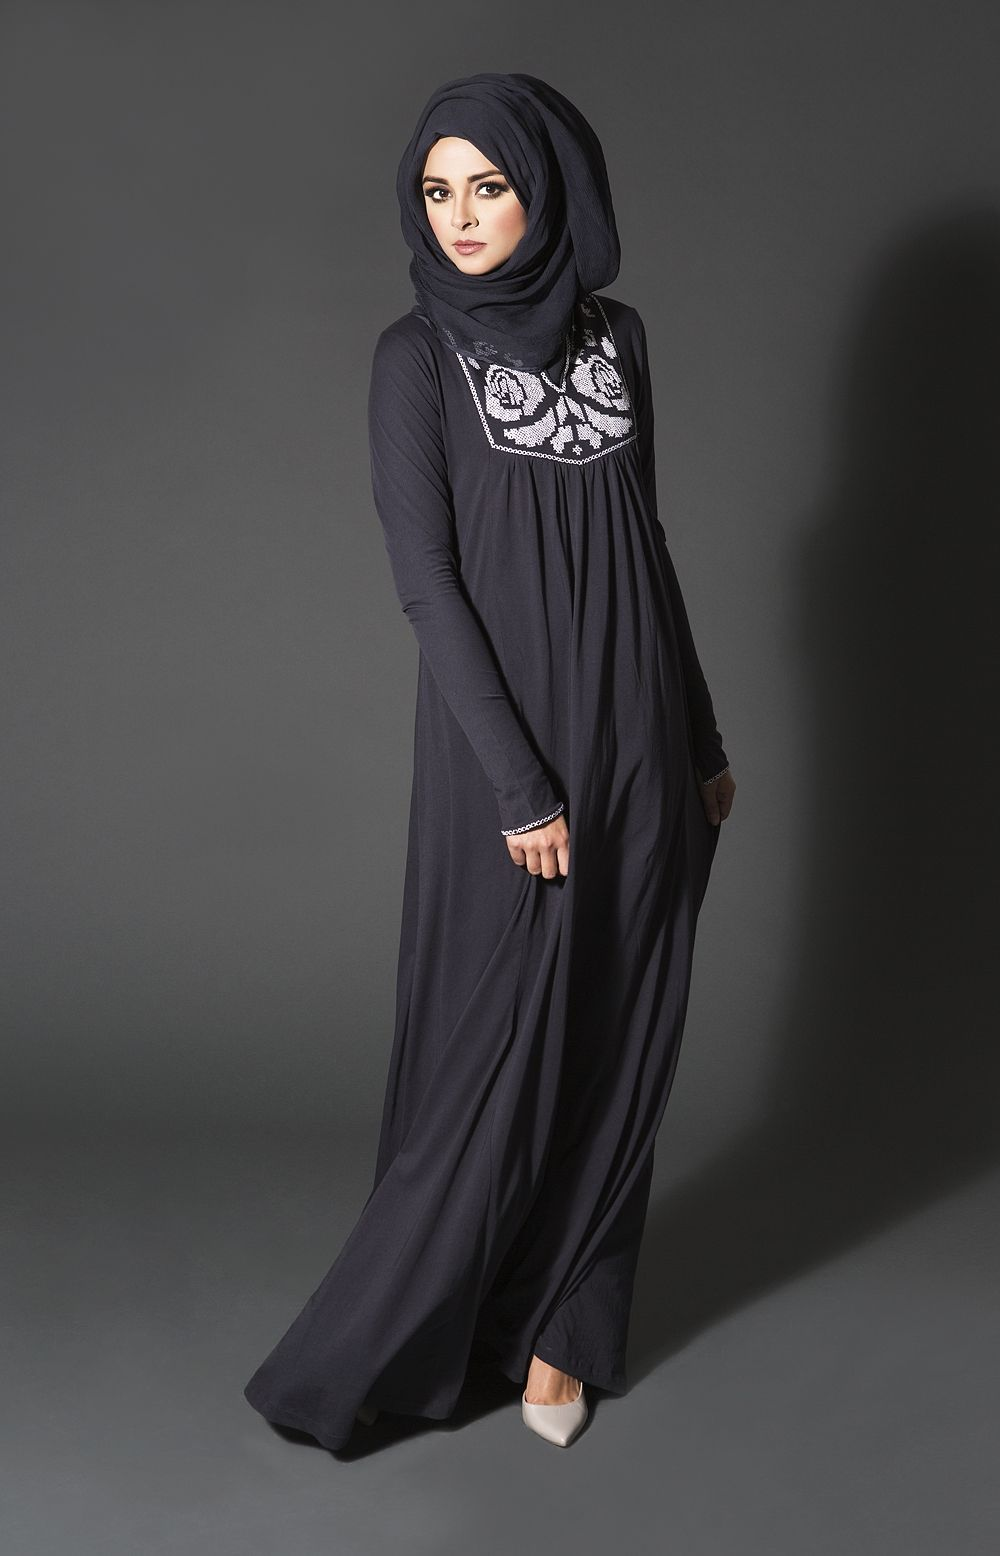 abaya Cross aab Abaya Rose Stitch Holic embroideryedit FIrwIBxq